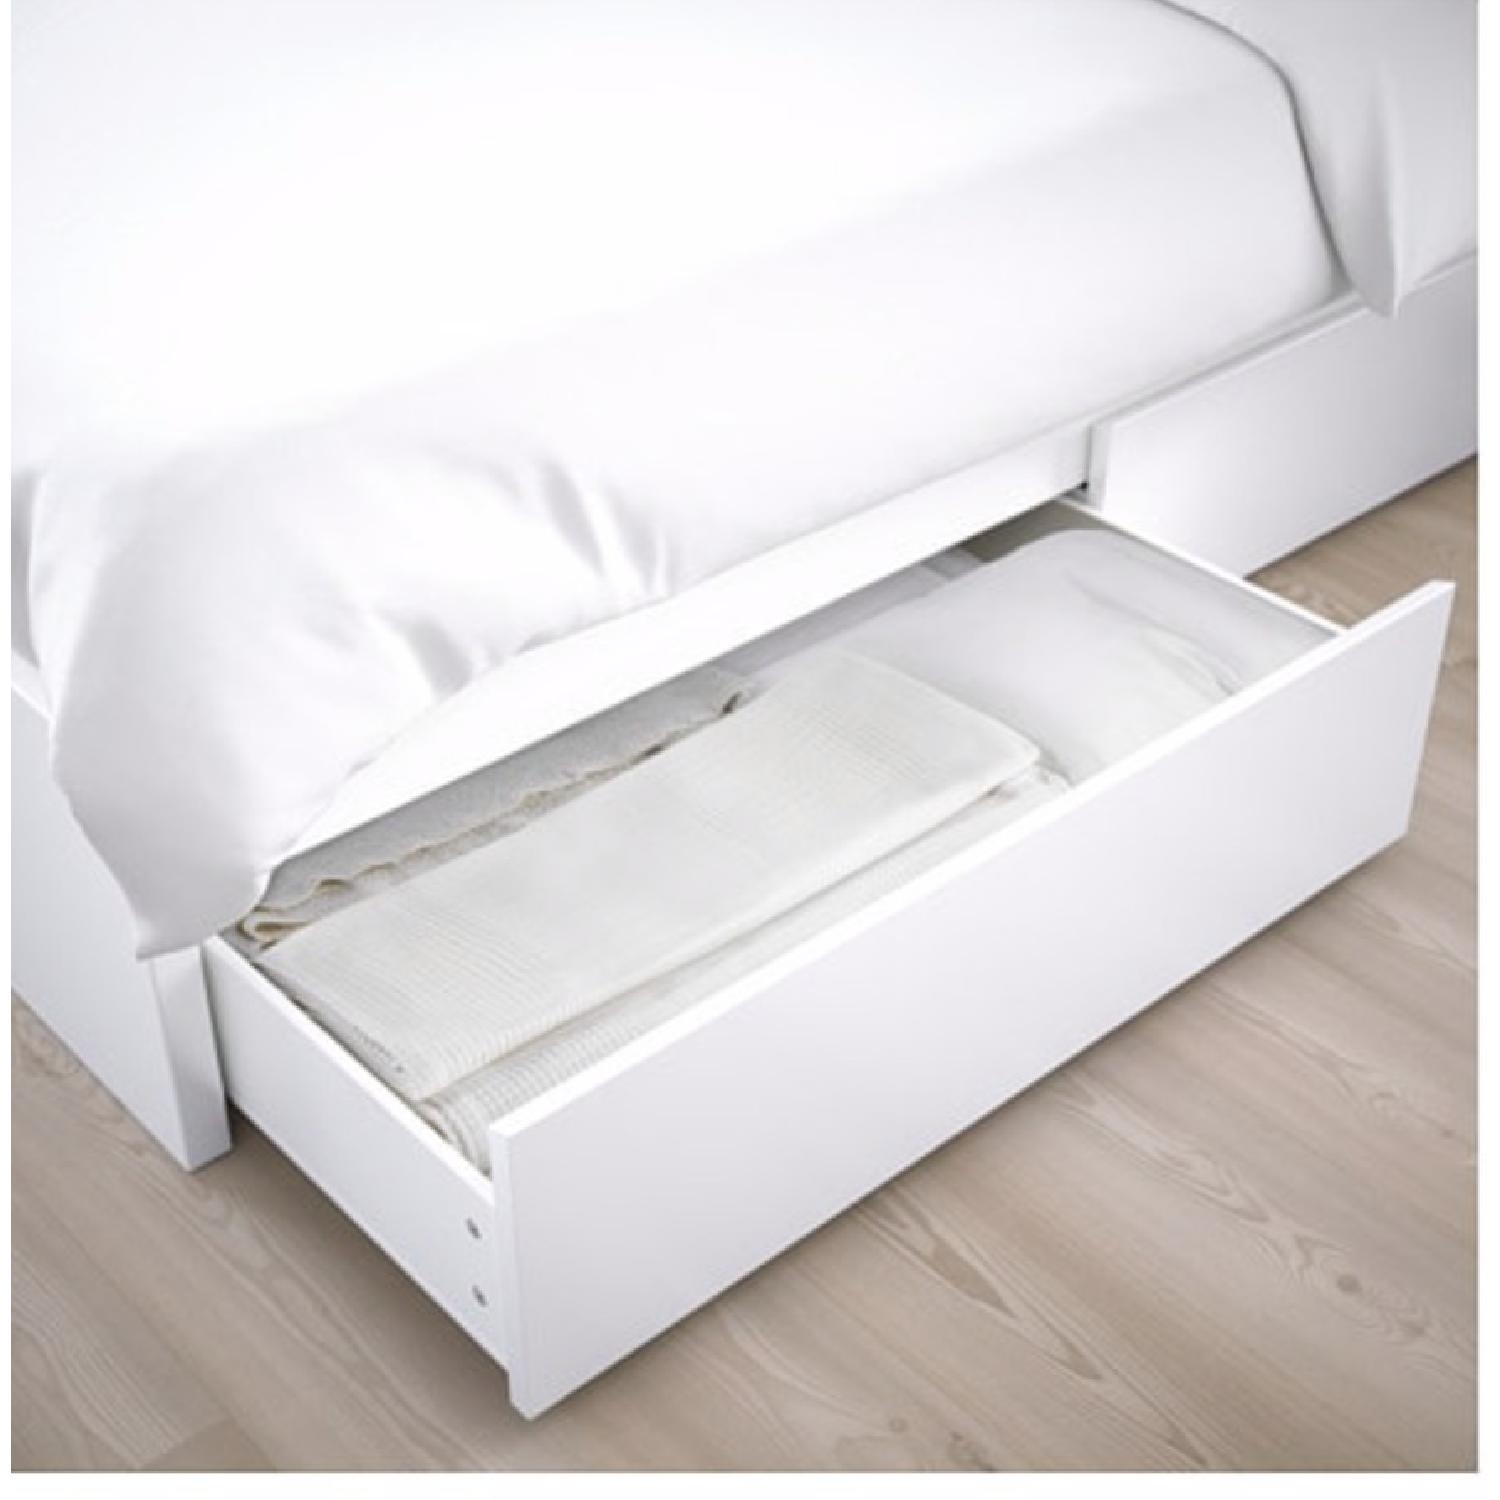 Outstanding Ikea Malm Full Size White Storage Bed Aptdeco Pabps2019 Chair Design Images Pabps2019Com